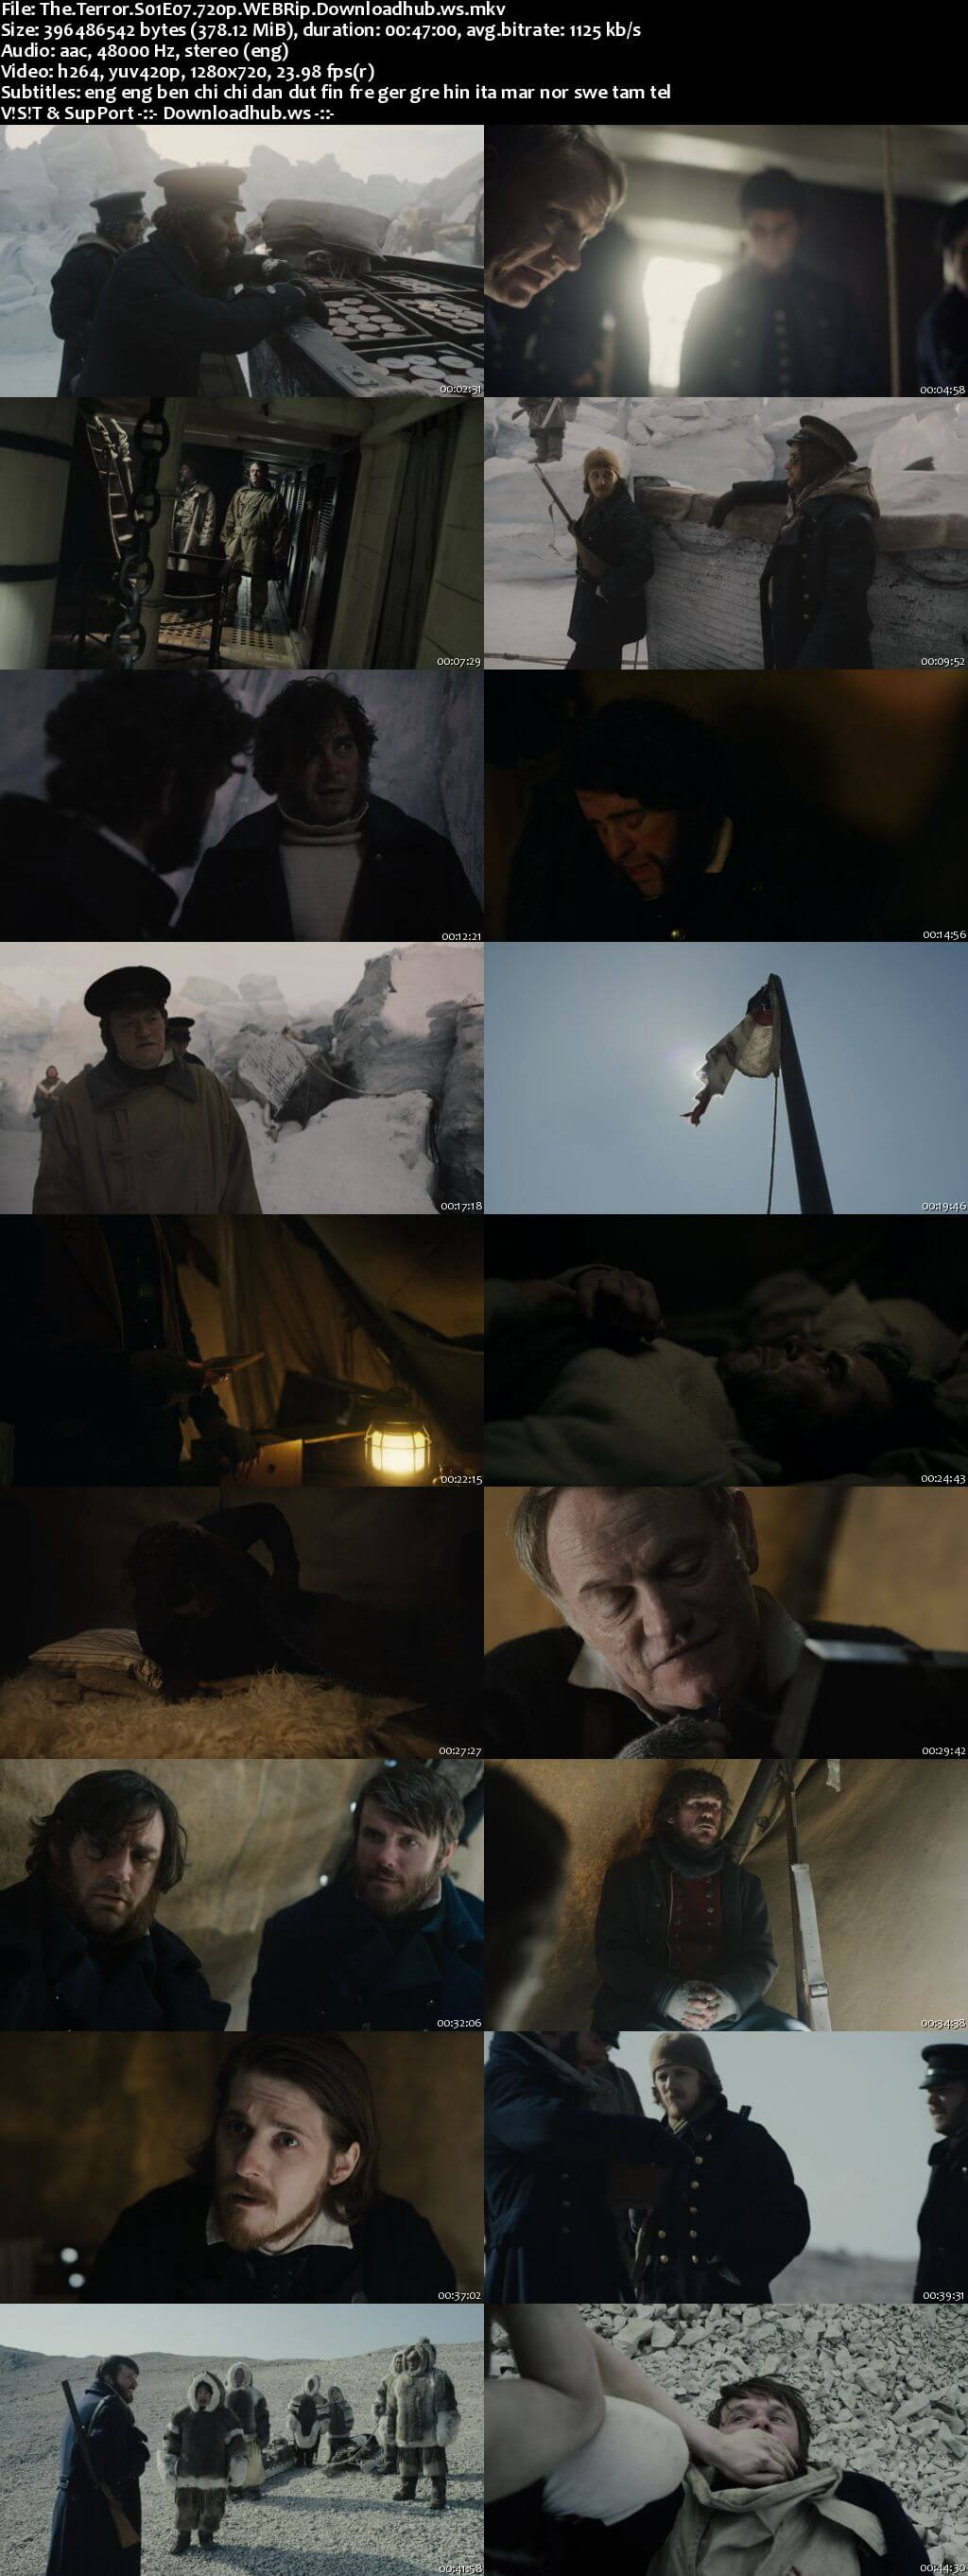 The Terror S01E07 350MB WEBRip 720p x264 MSubs